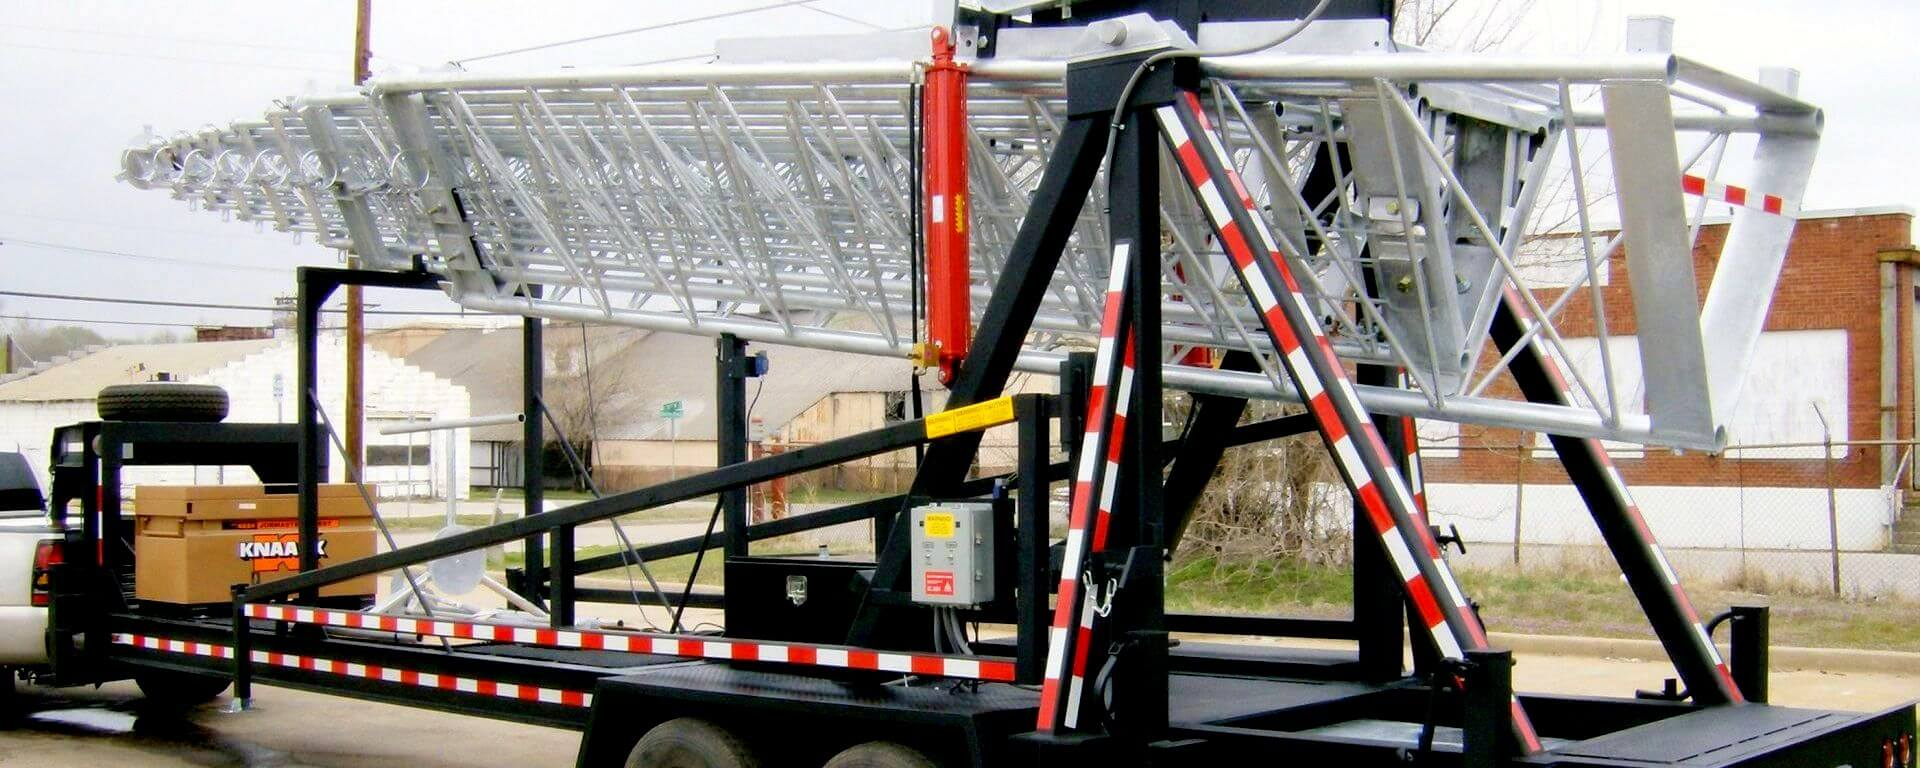 1920×768-AllTech-Communications-Cell-on-Wheels-Telescopic-Tower-Trailer-amp-Telecom-Shelter-Manufacturing-Company-Slider-2